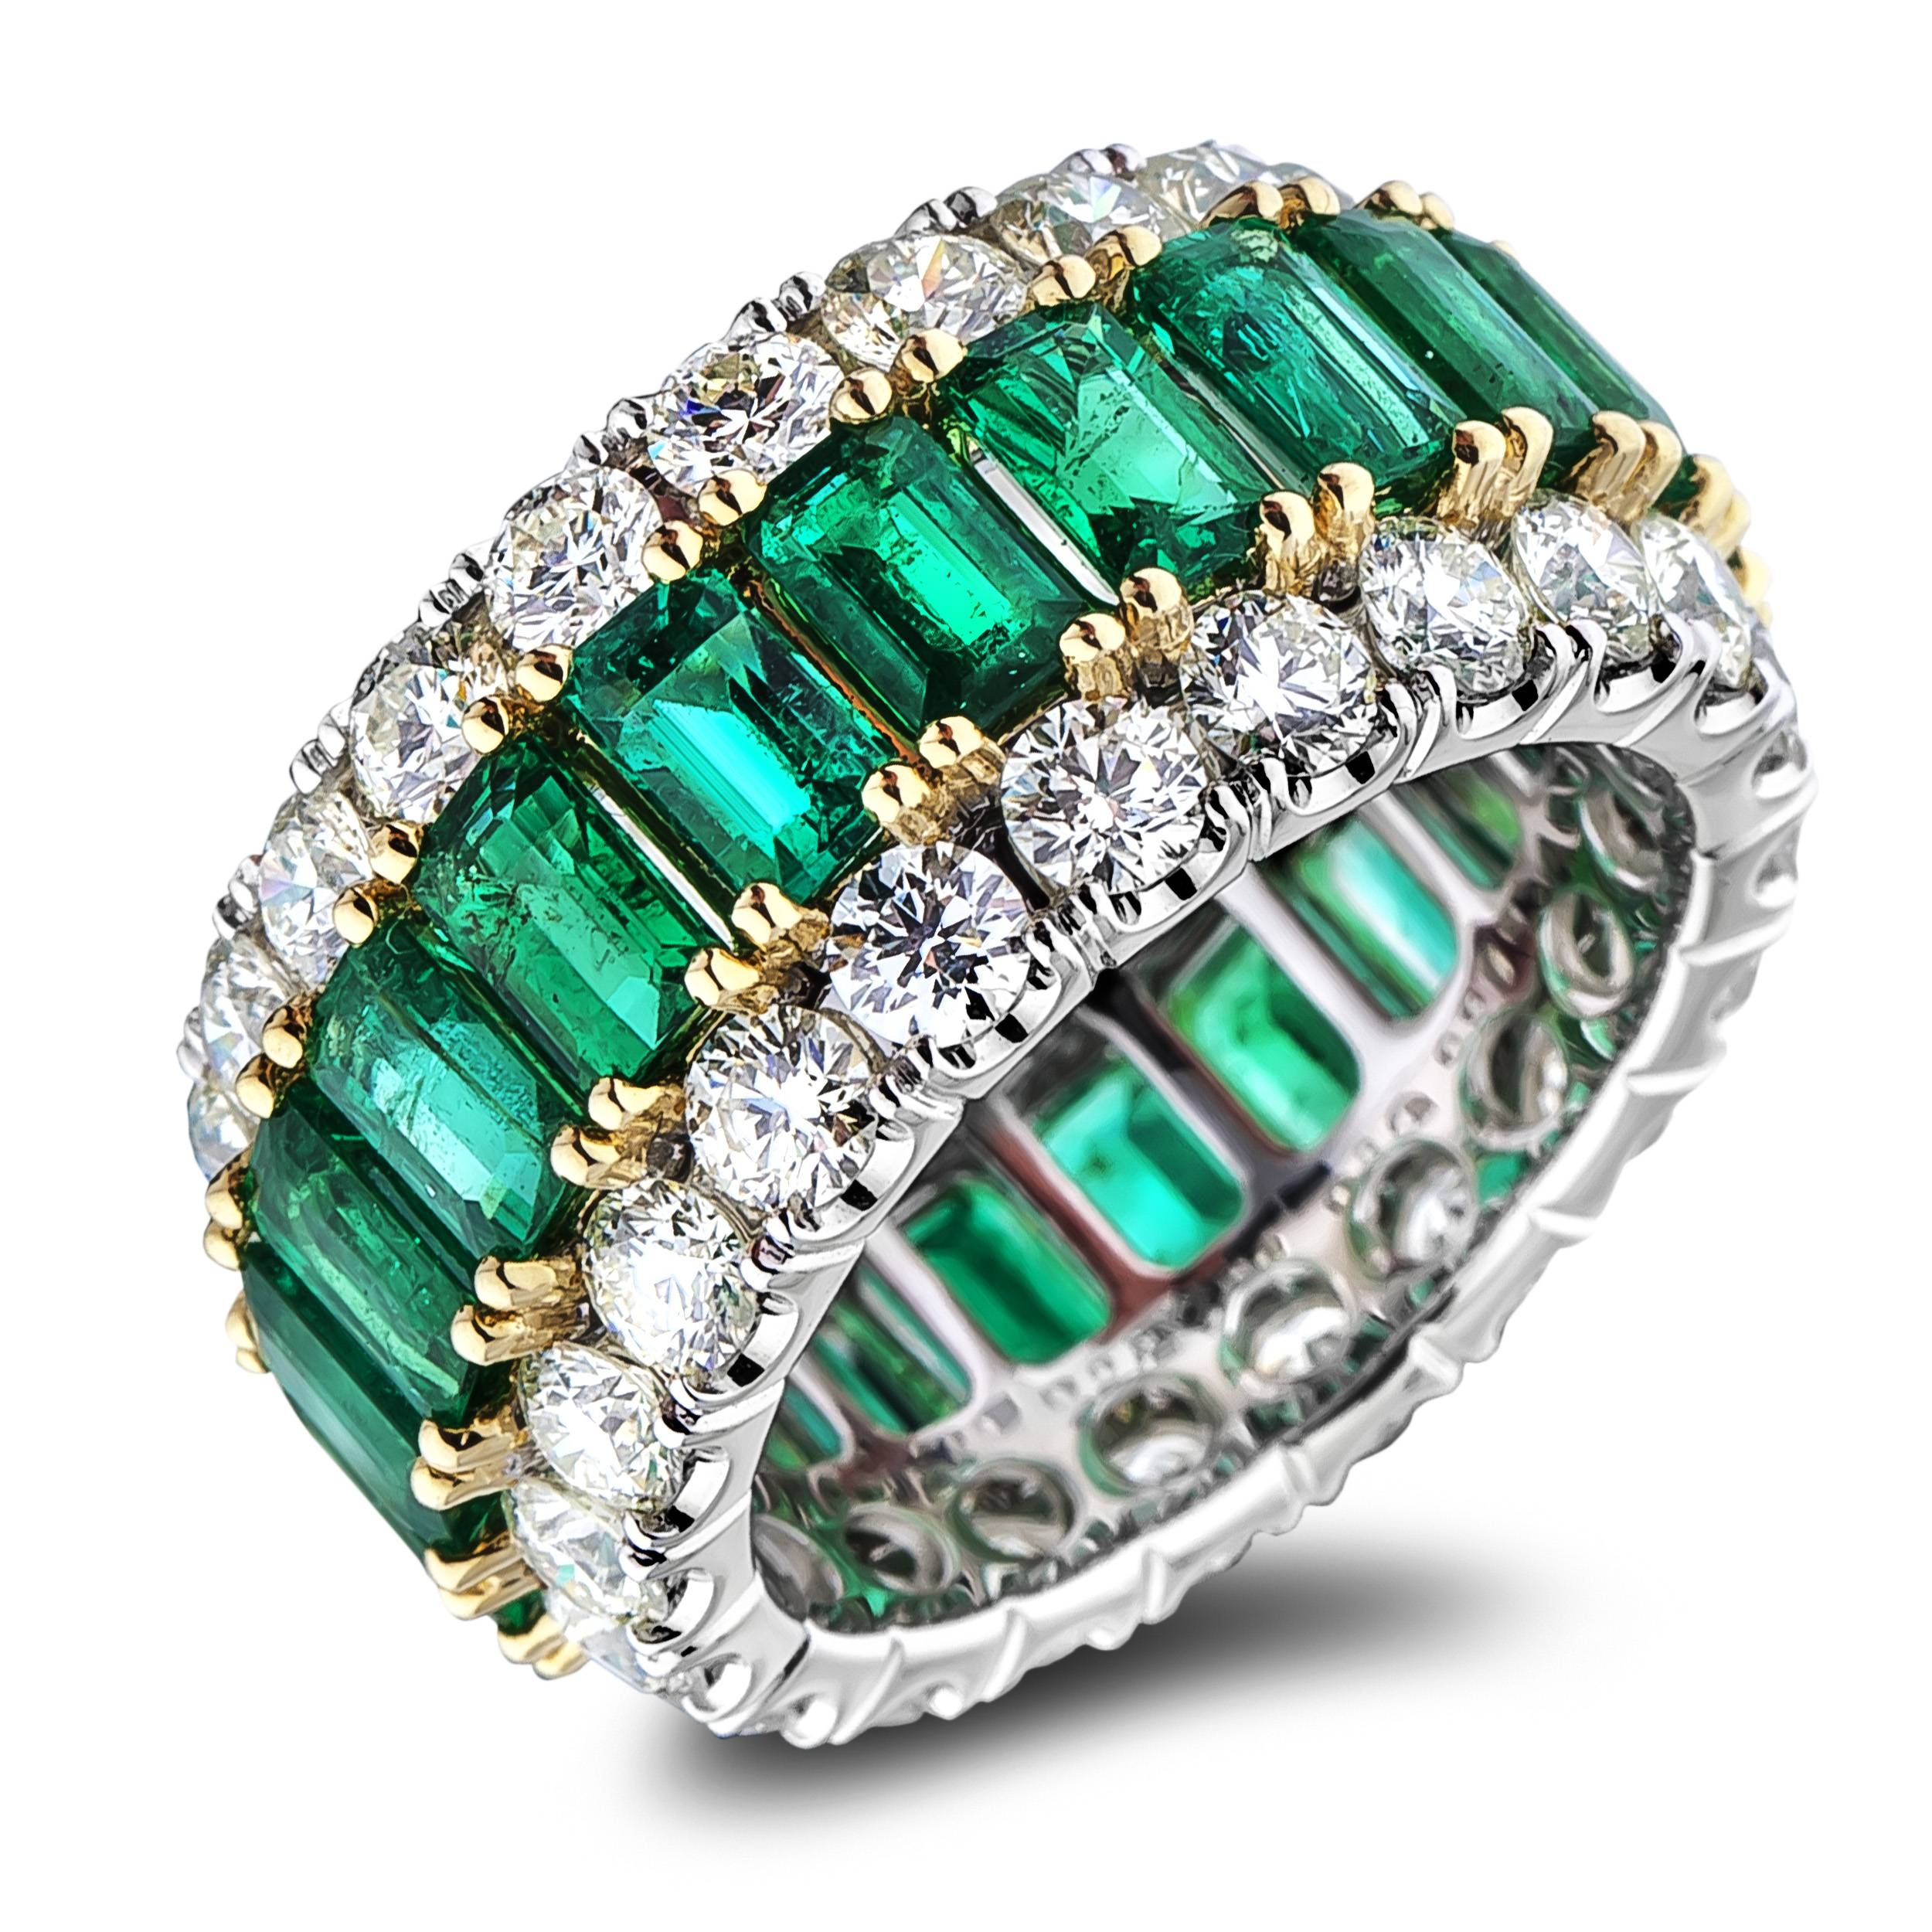 Diamond Anniversary Rings – Sgr1183 – Anaya Fine Jewellery Collection Within Most Current Emerald Anniversary Rings (View 15 of 25)